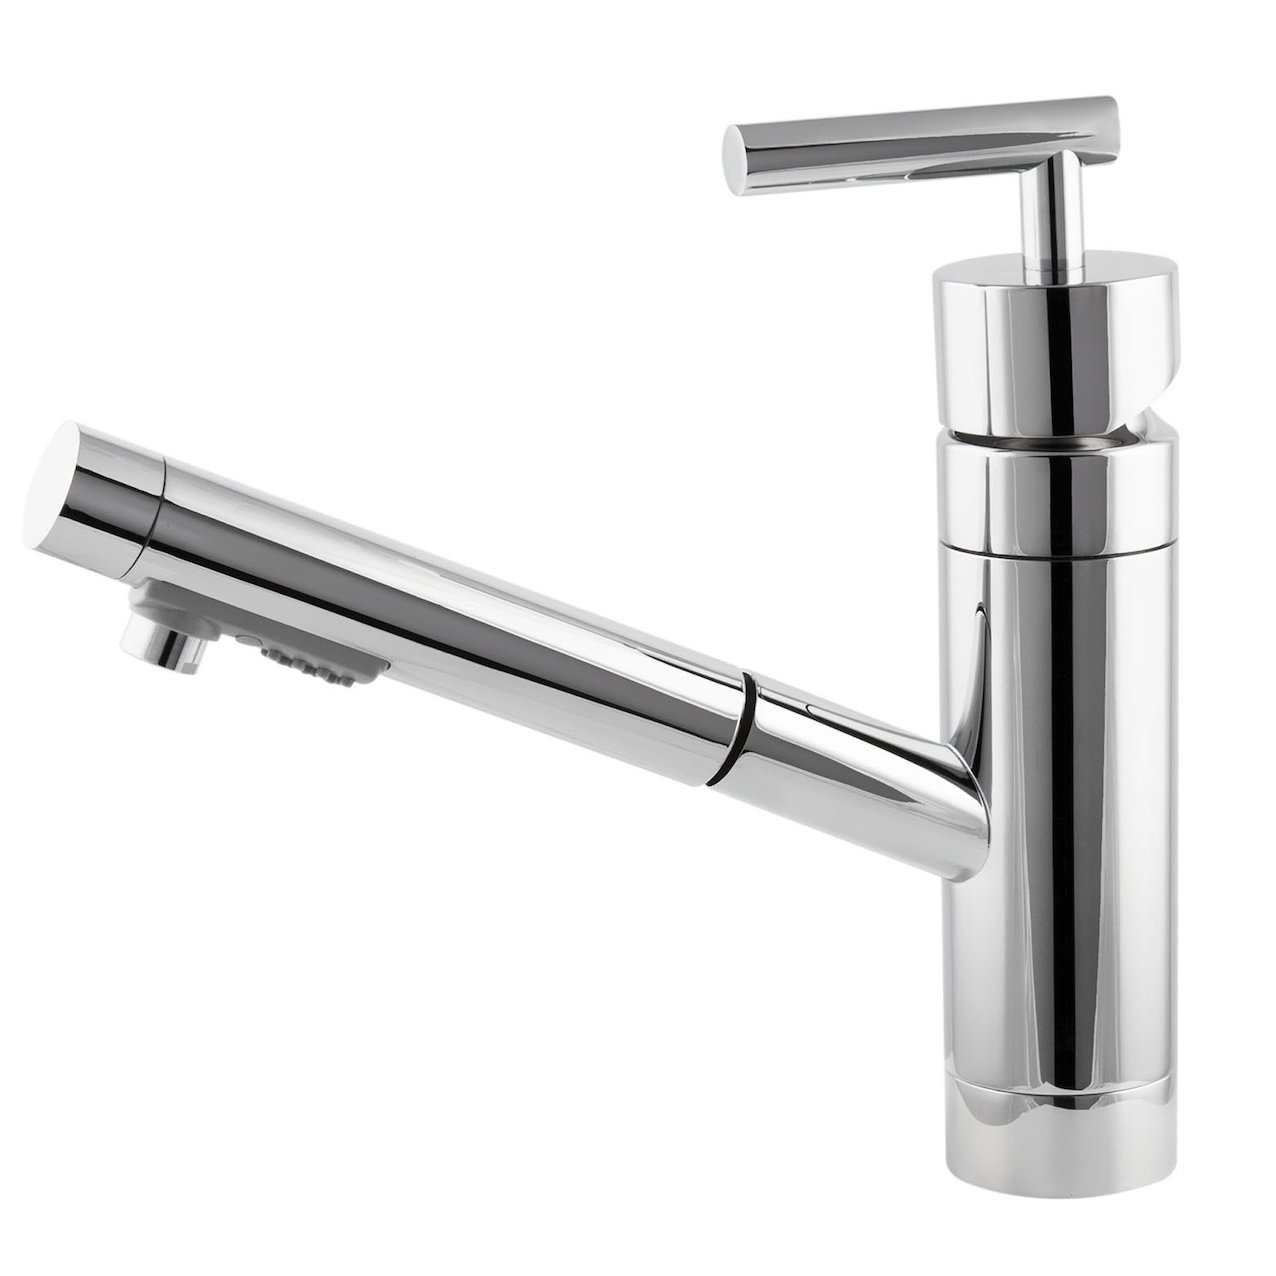 Single lever kitchen mixer with a extractable spout